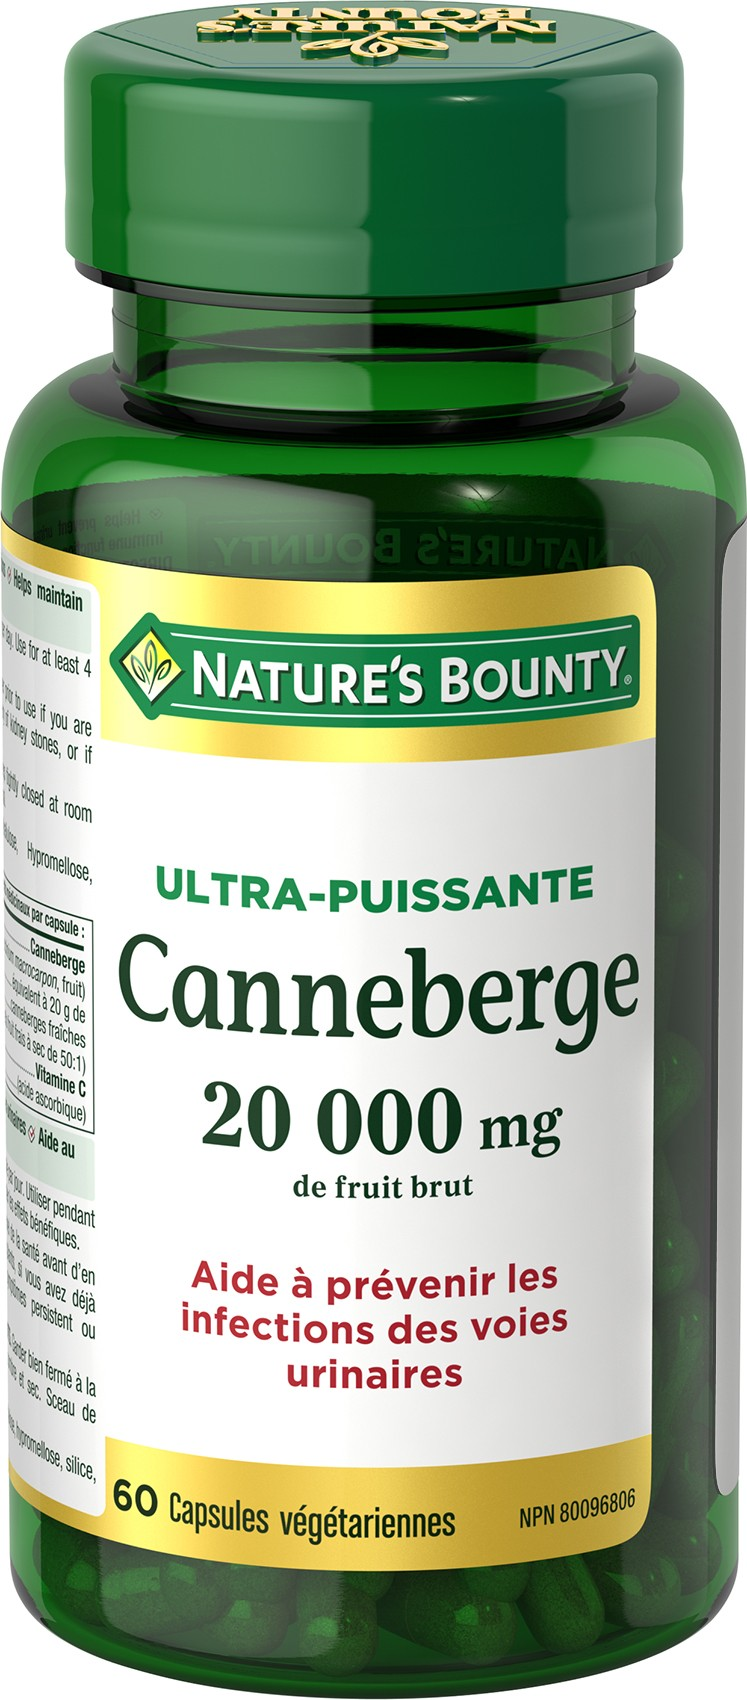 Canneberge Ultra-Puissante